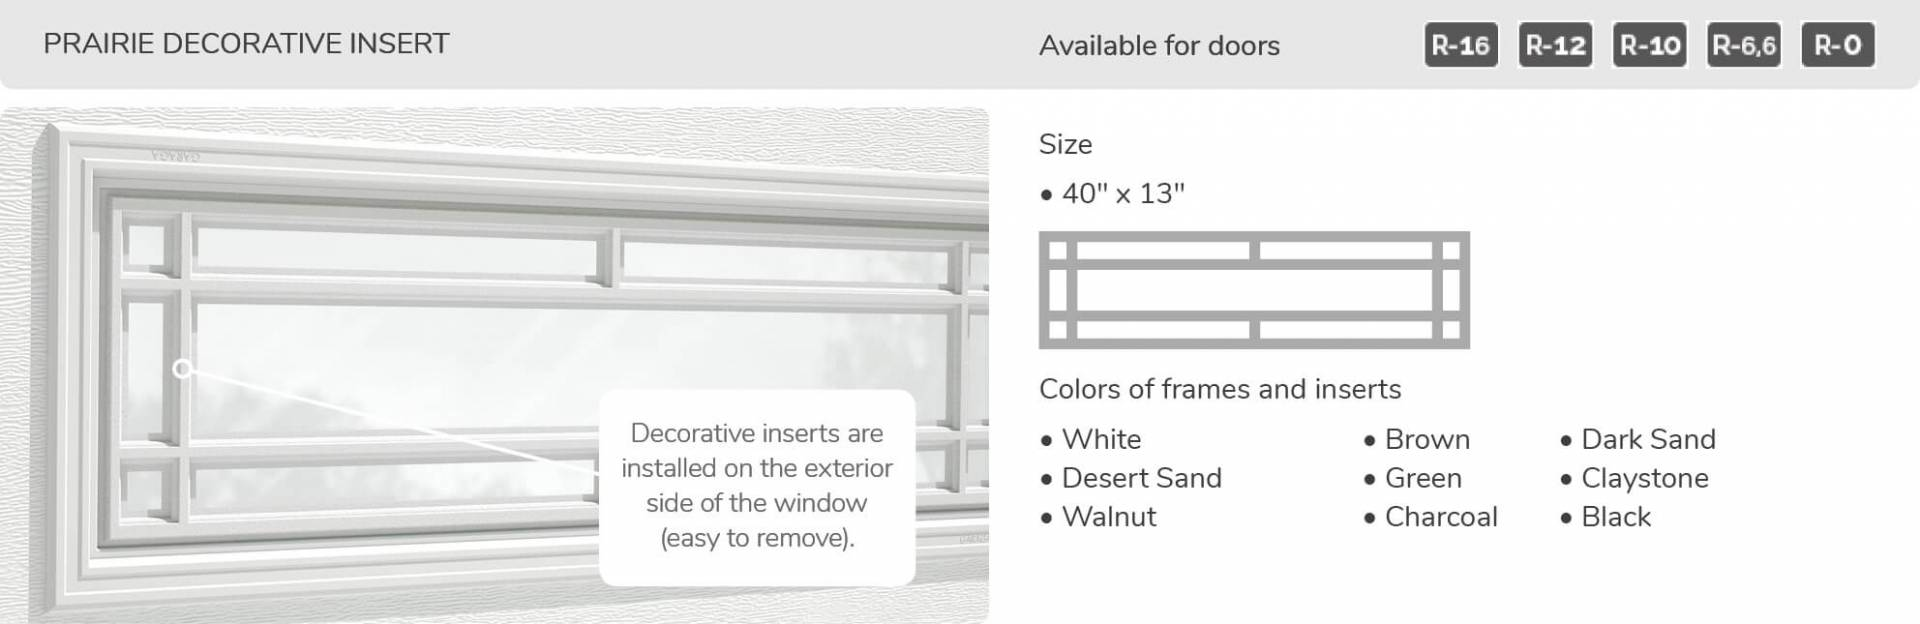 Prairie Decorative Insert, 40' x 13', available for doors R-16, R-12, R-10, R-6,6 and R-0